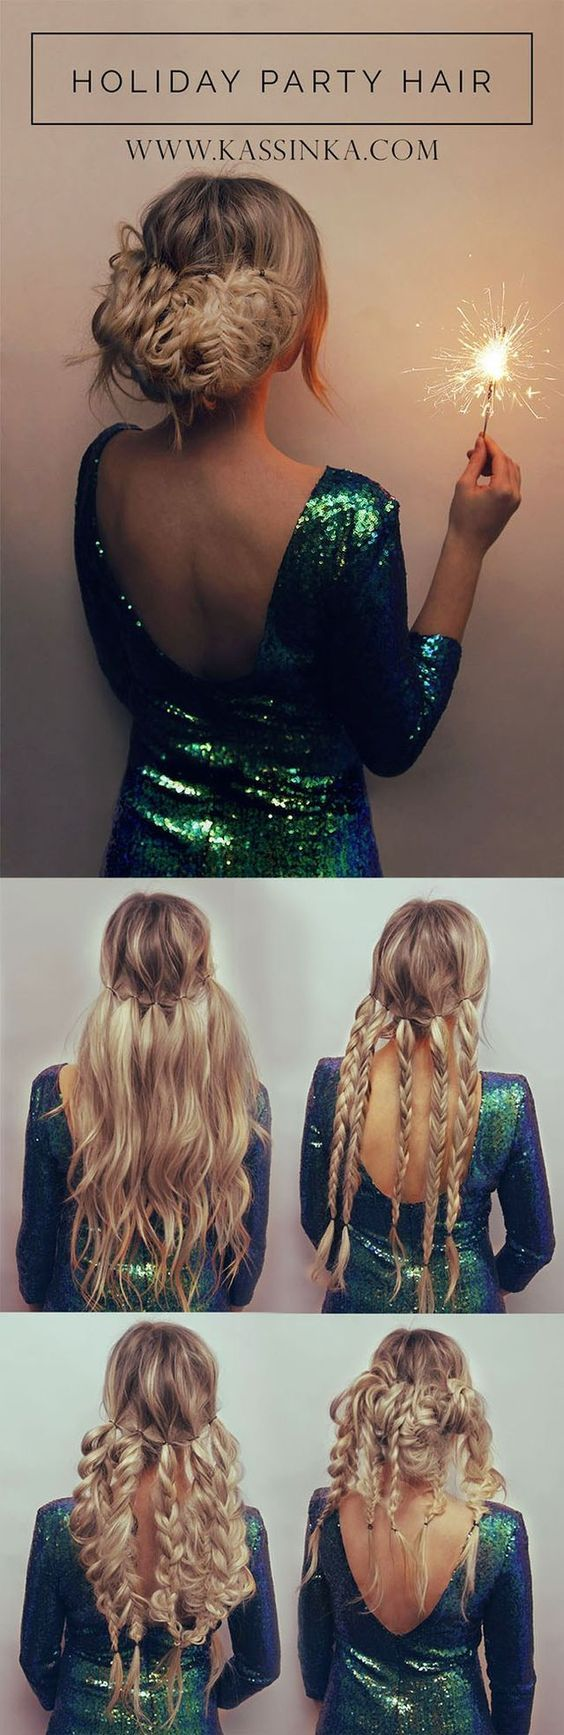 Christmas Party Hairstyles Ideas 5